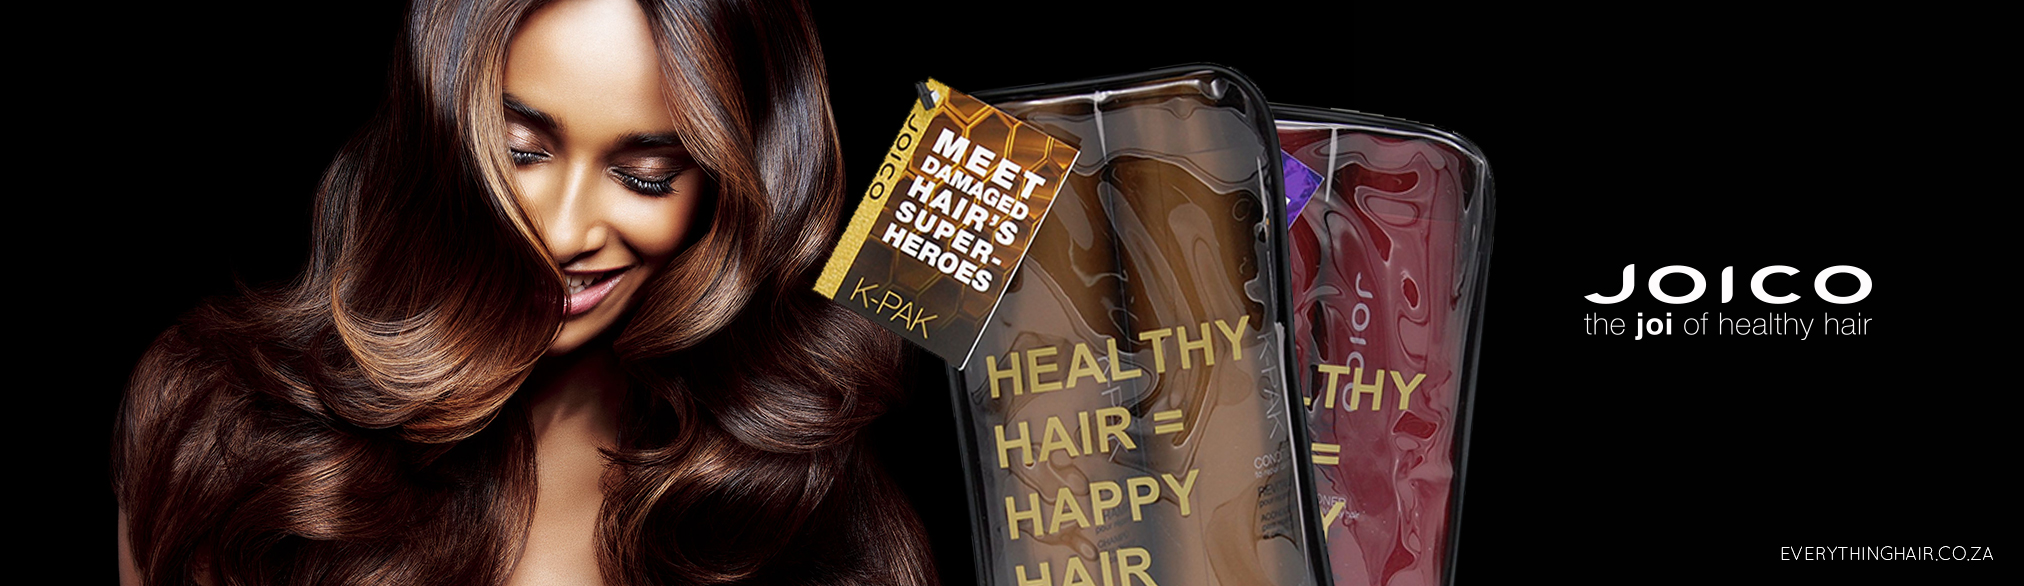 Joico Gifts & Packs